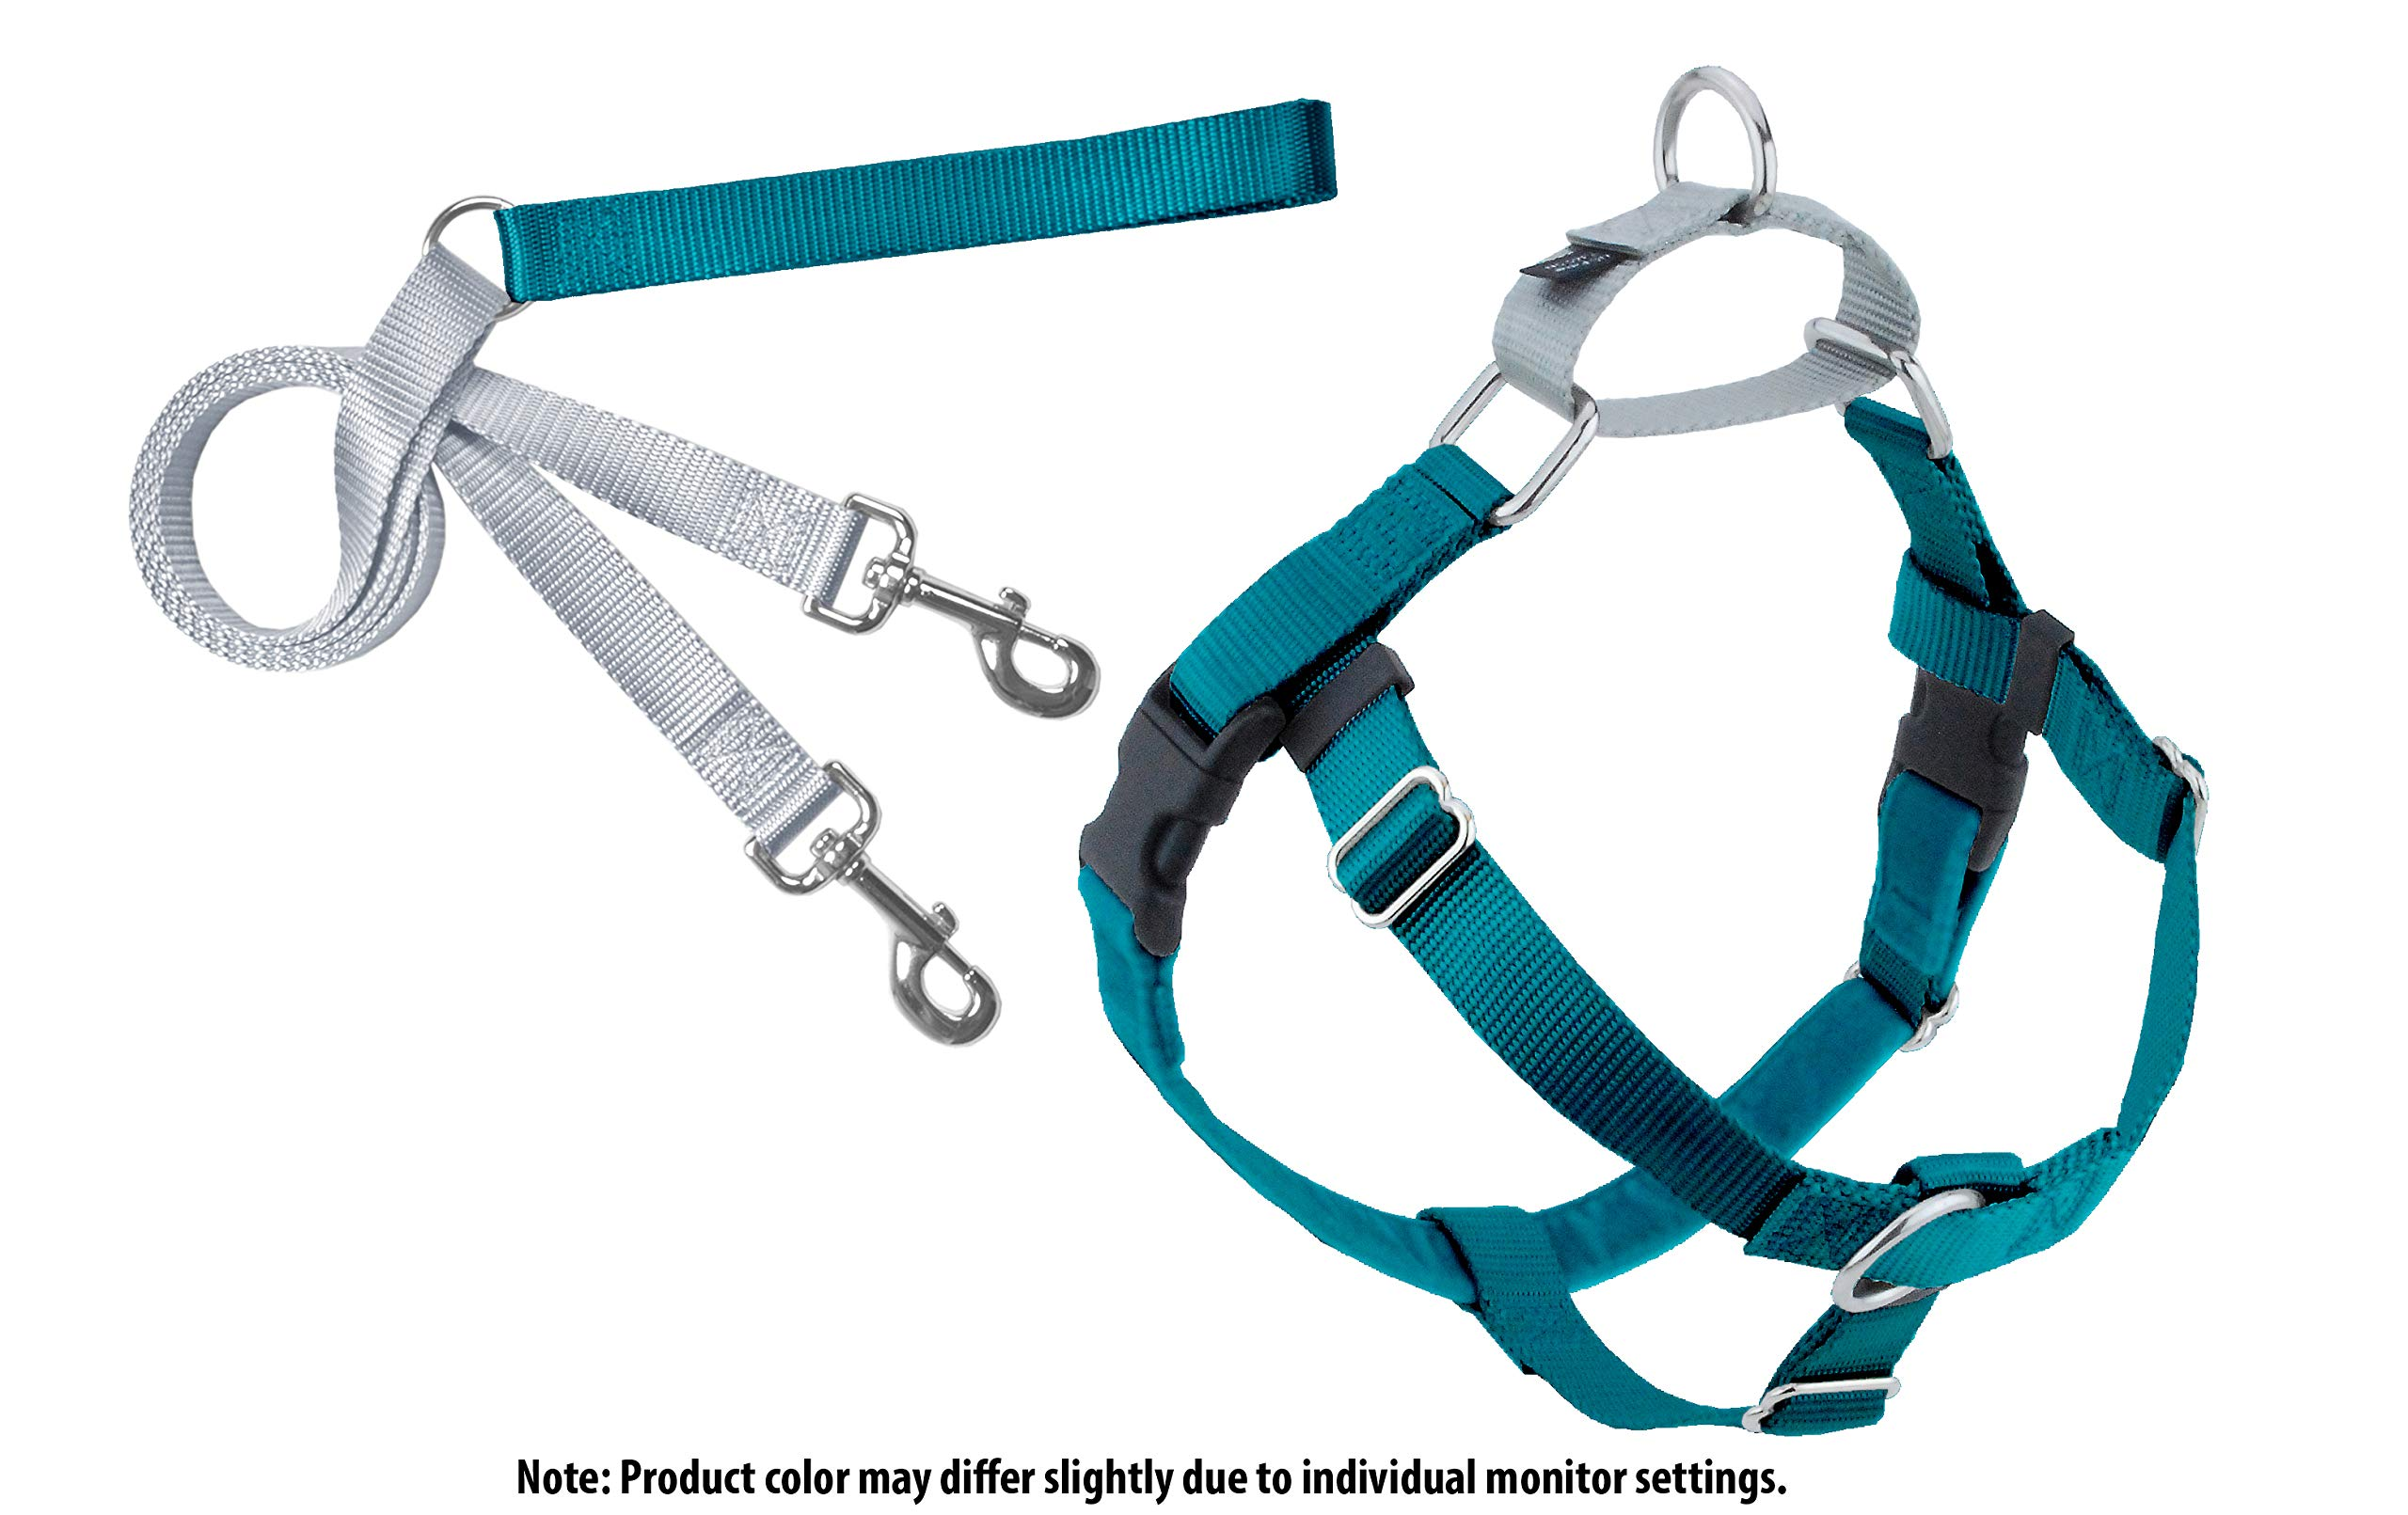 2 Hounds Design Freedom No-Pull Dog Harness and Leash, Adjustable Comfortable Control for Dog Walking, Made in USA (Medium 1'') (Teal)